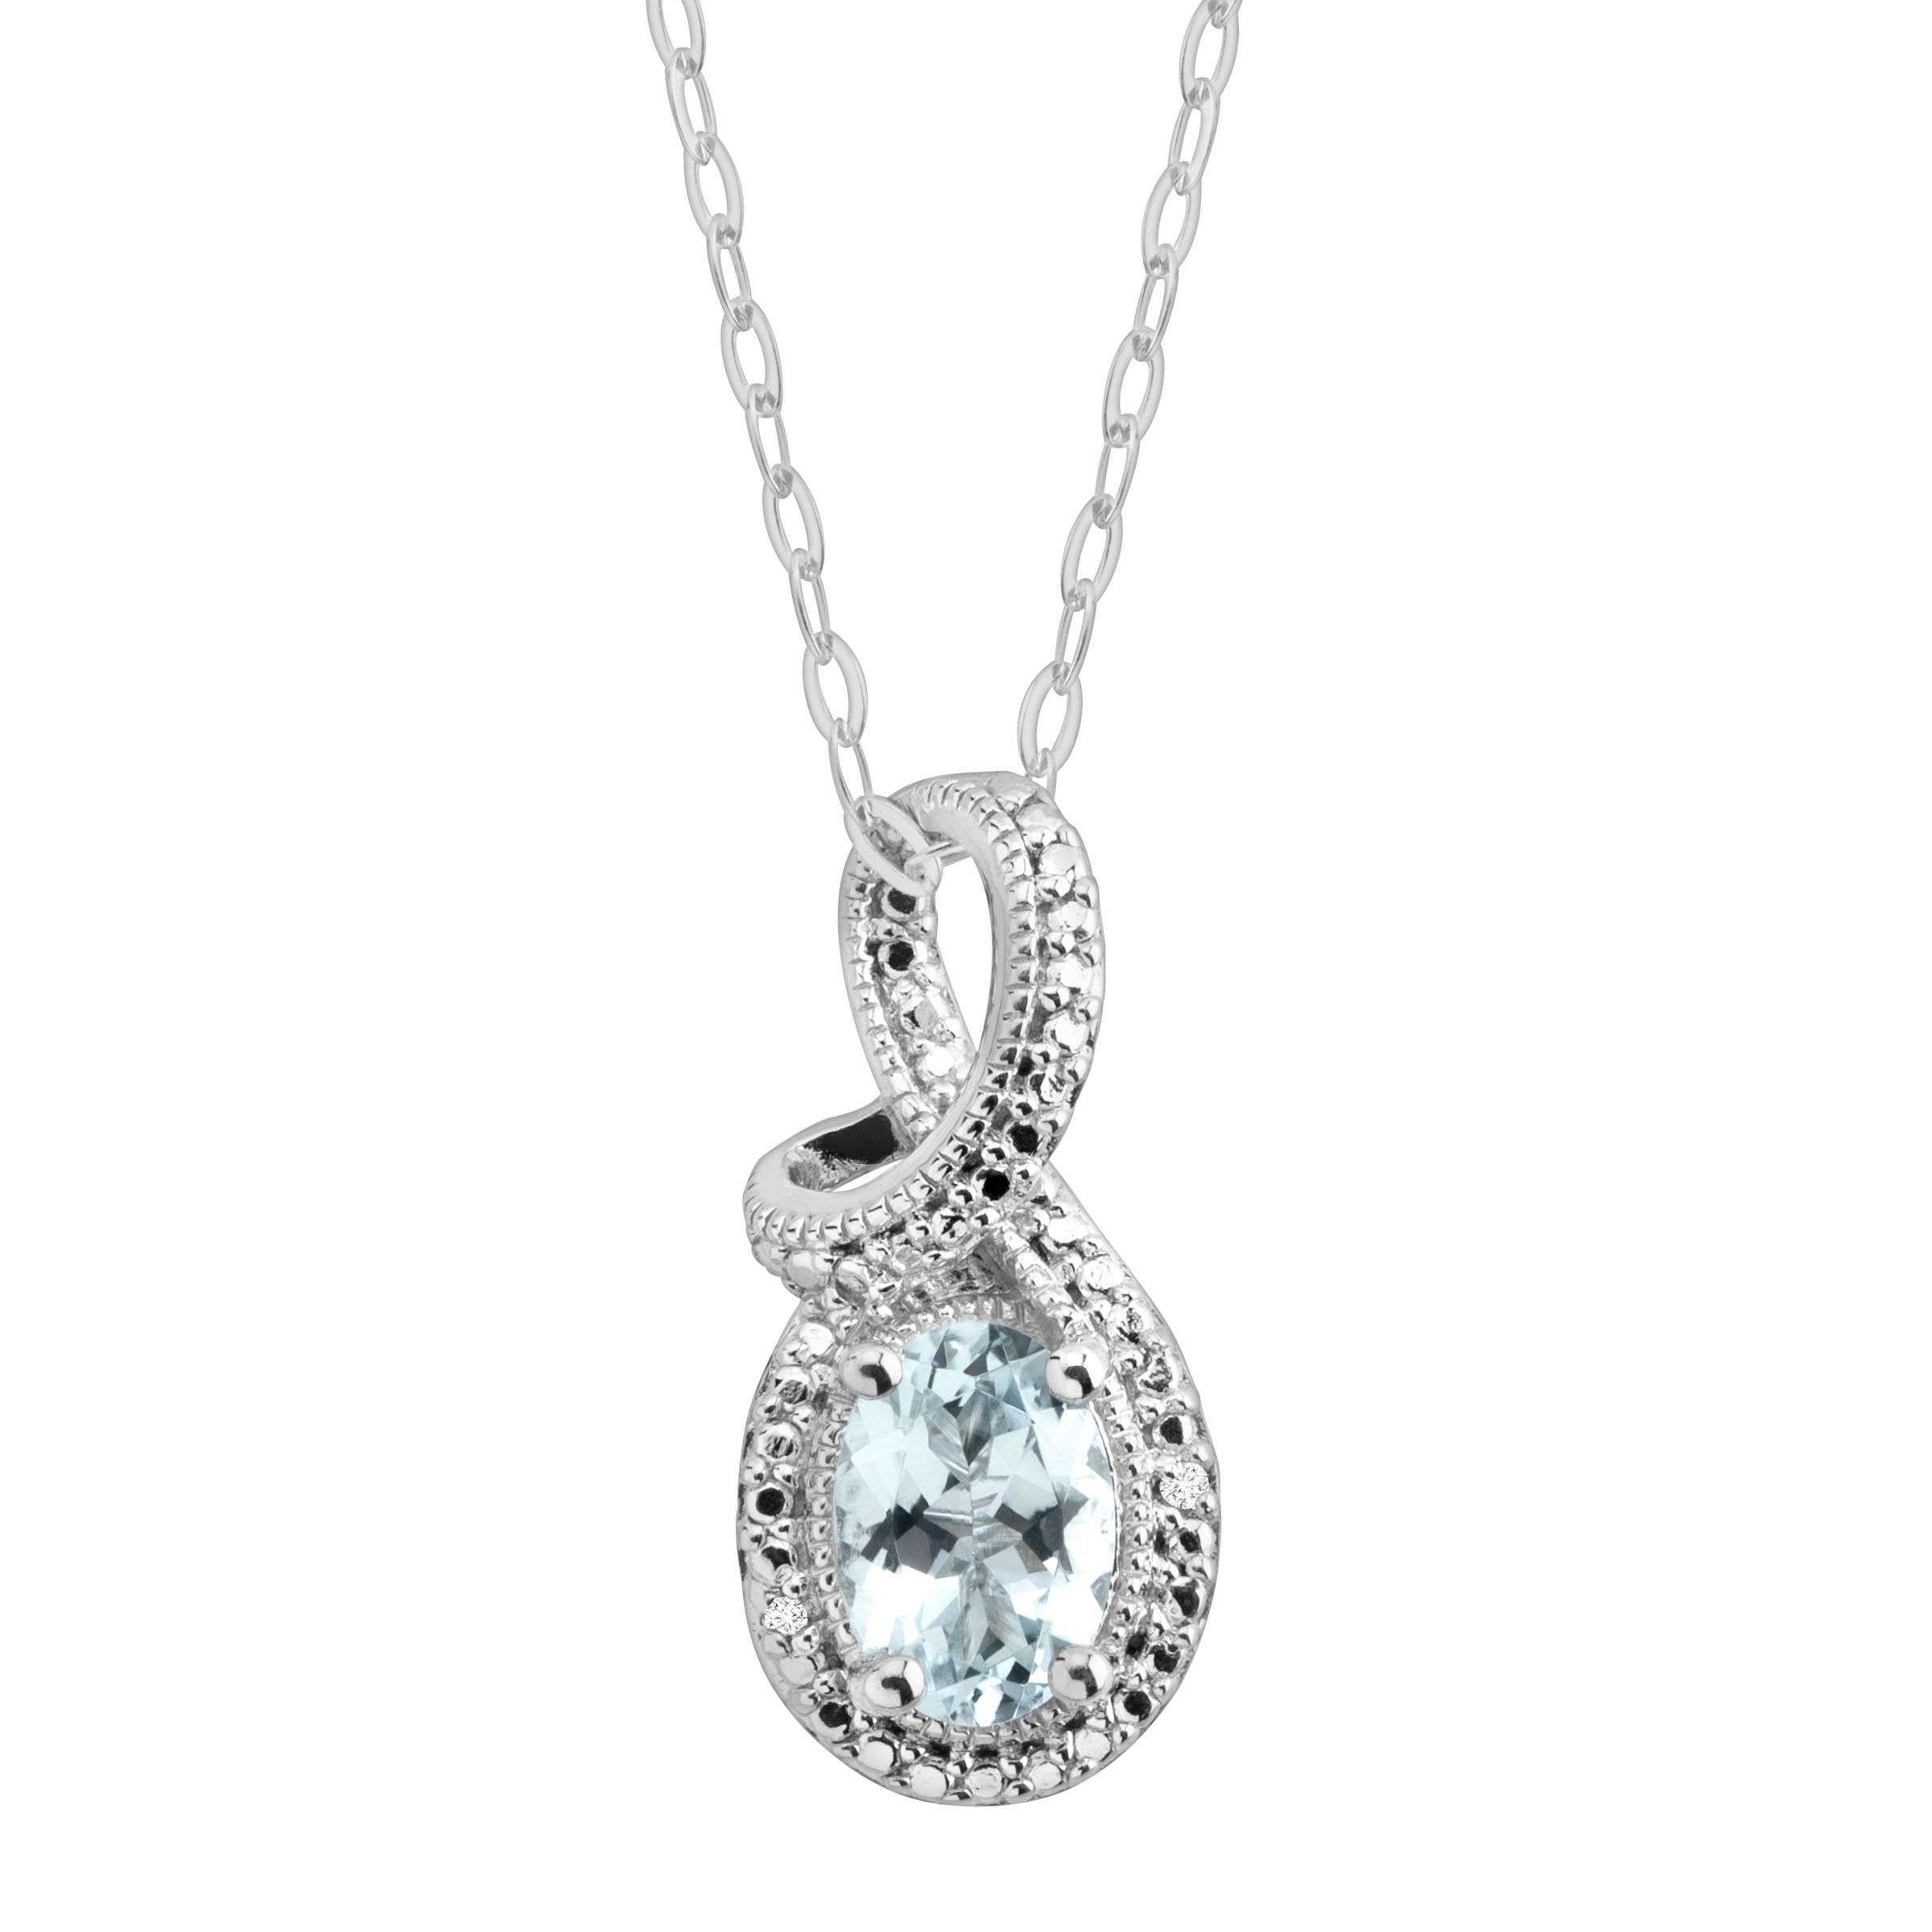 aquamarine jewelry pendant collections products march recommended birthstone gold biographie